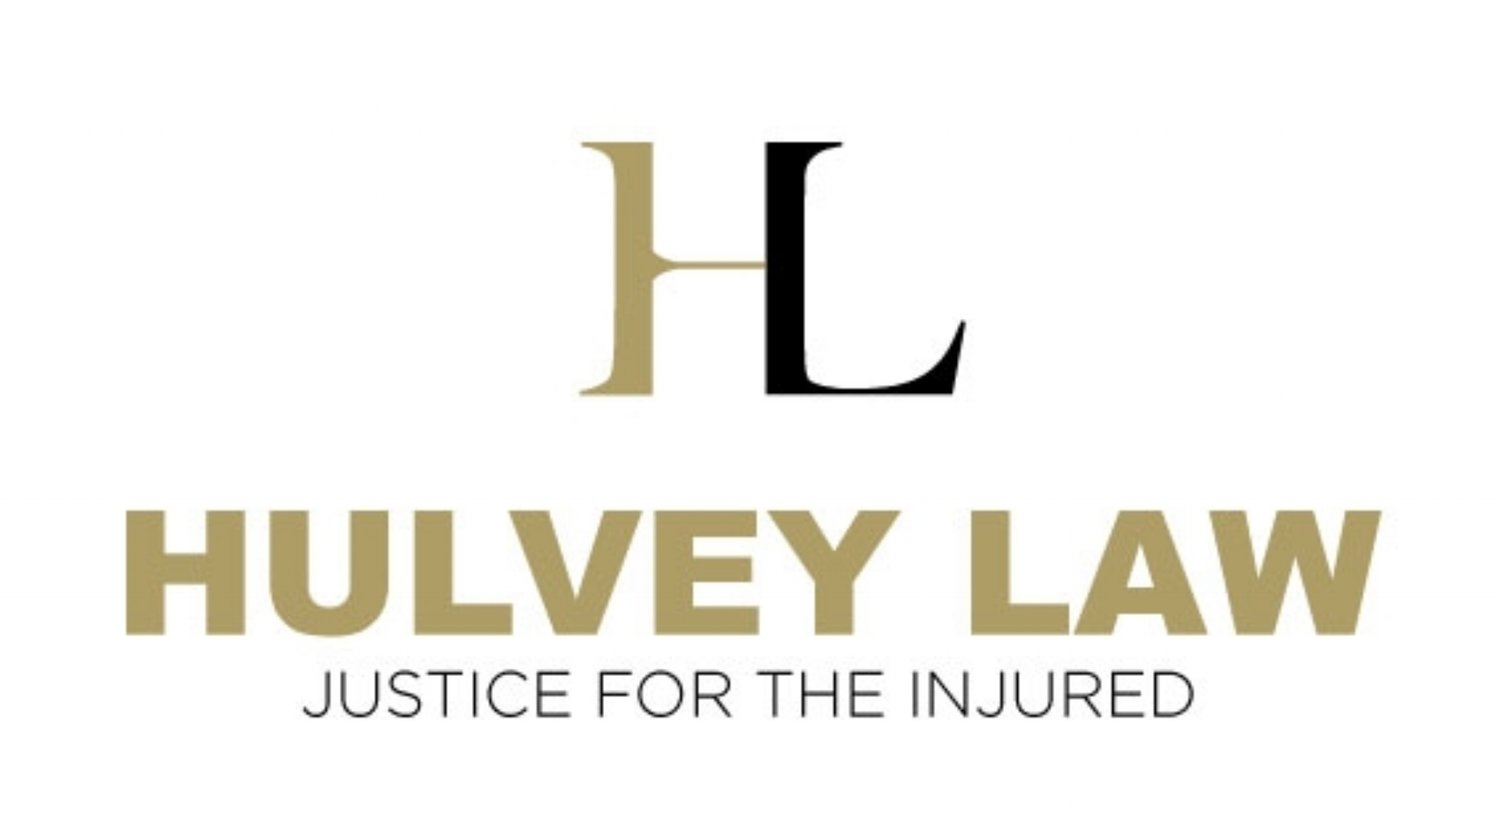 Hulvey Law